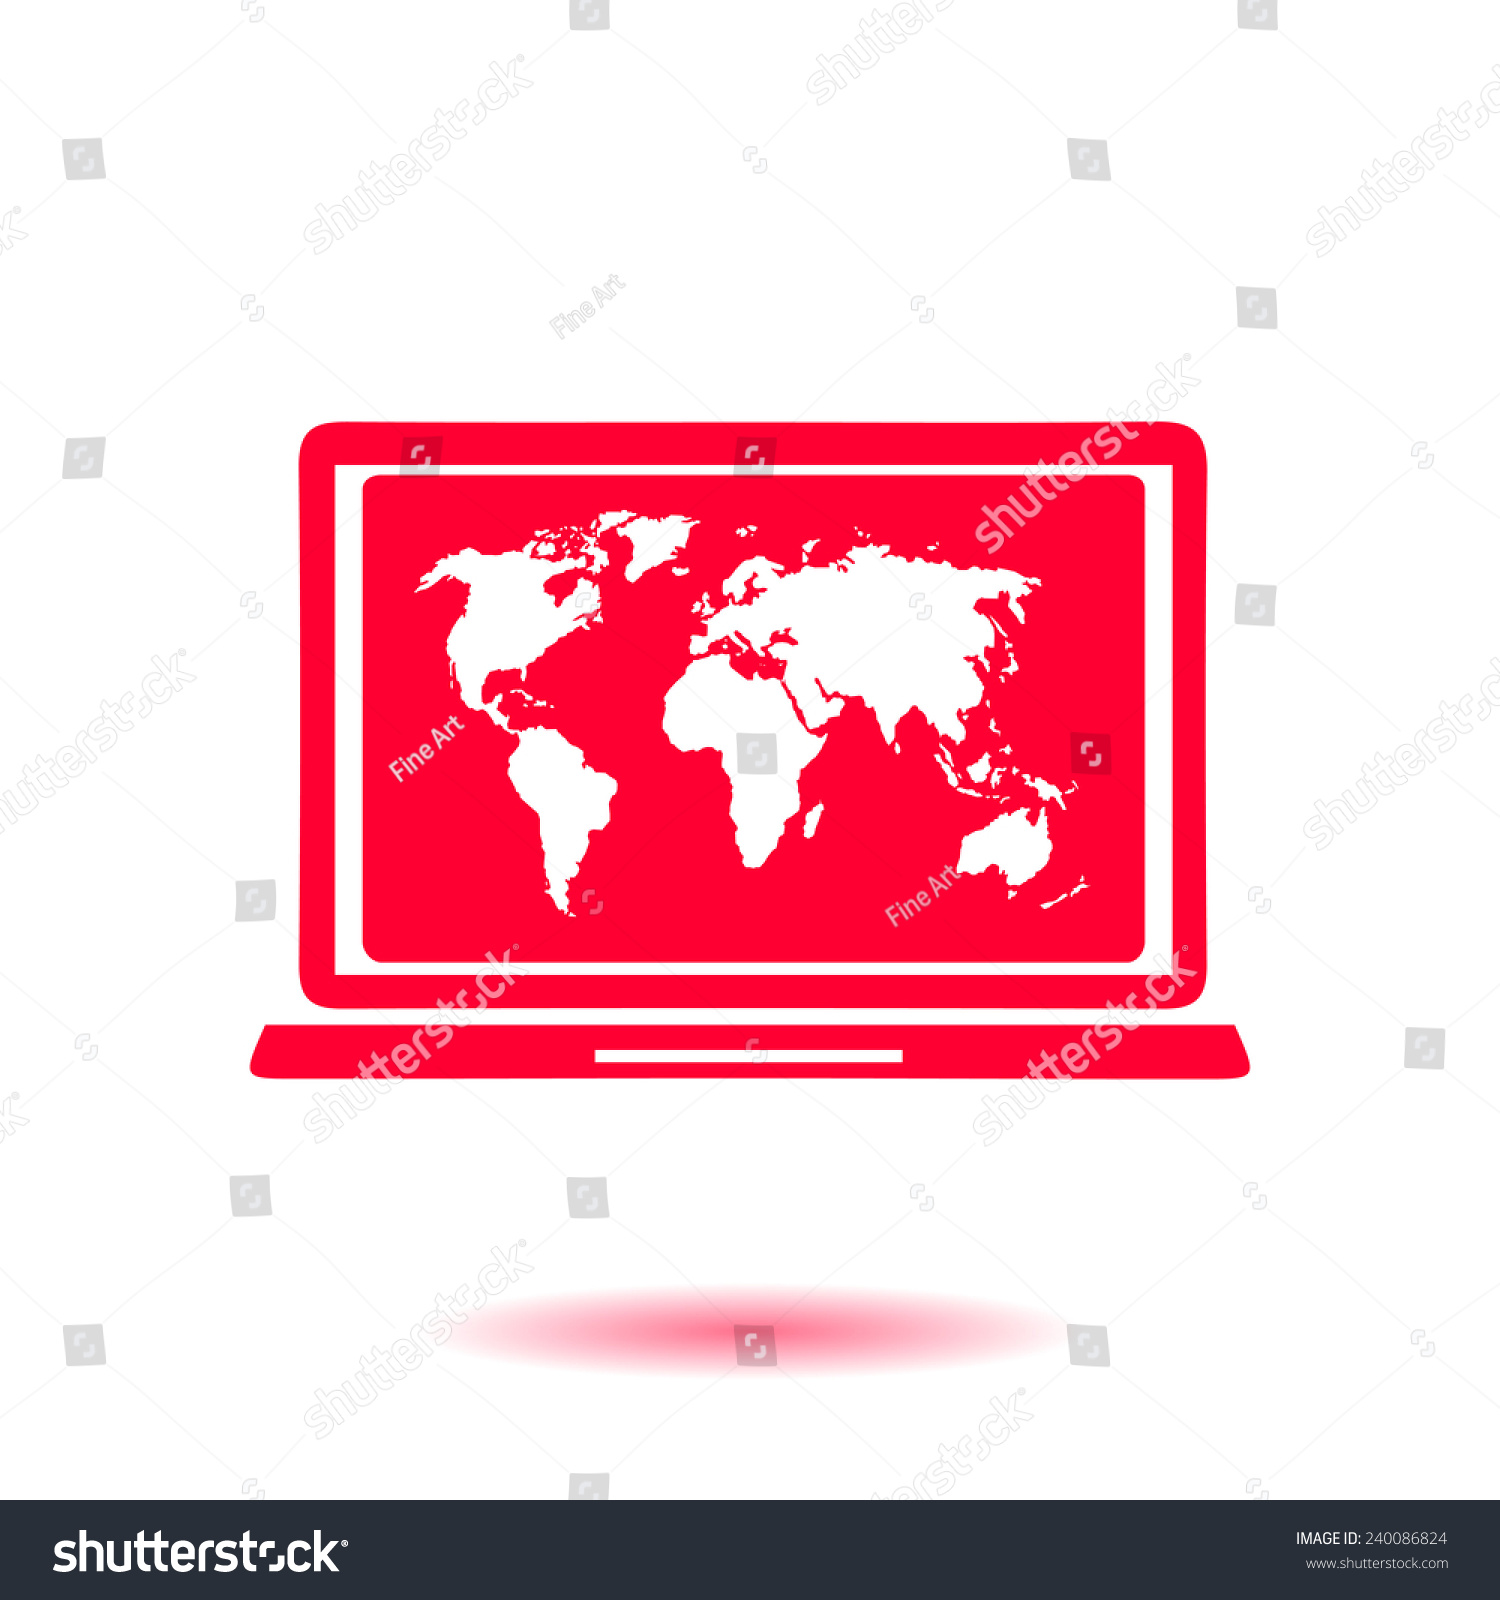 Laptop world map illustration world map stock vector 240086824 laptop and world map illustration world map geography symbol flat design style vector gumiabroncs Images